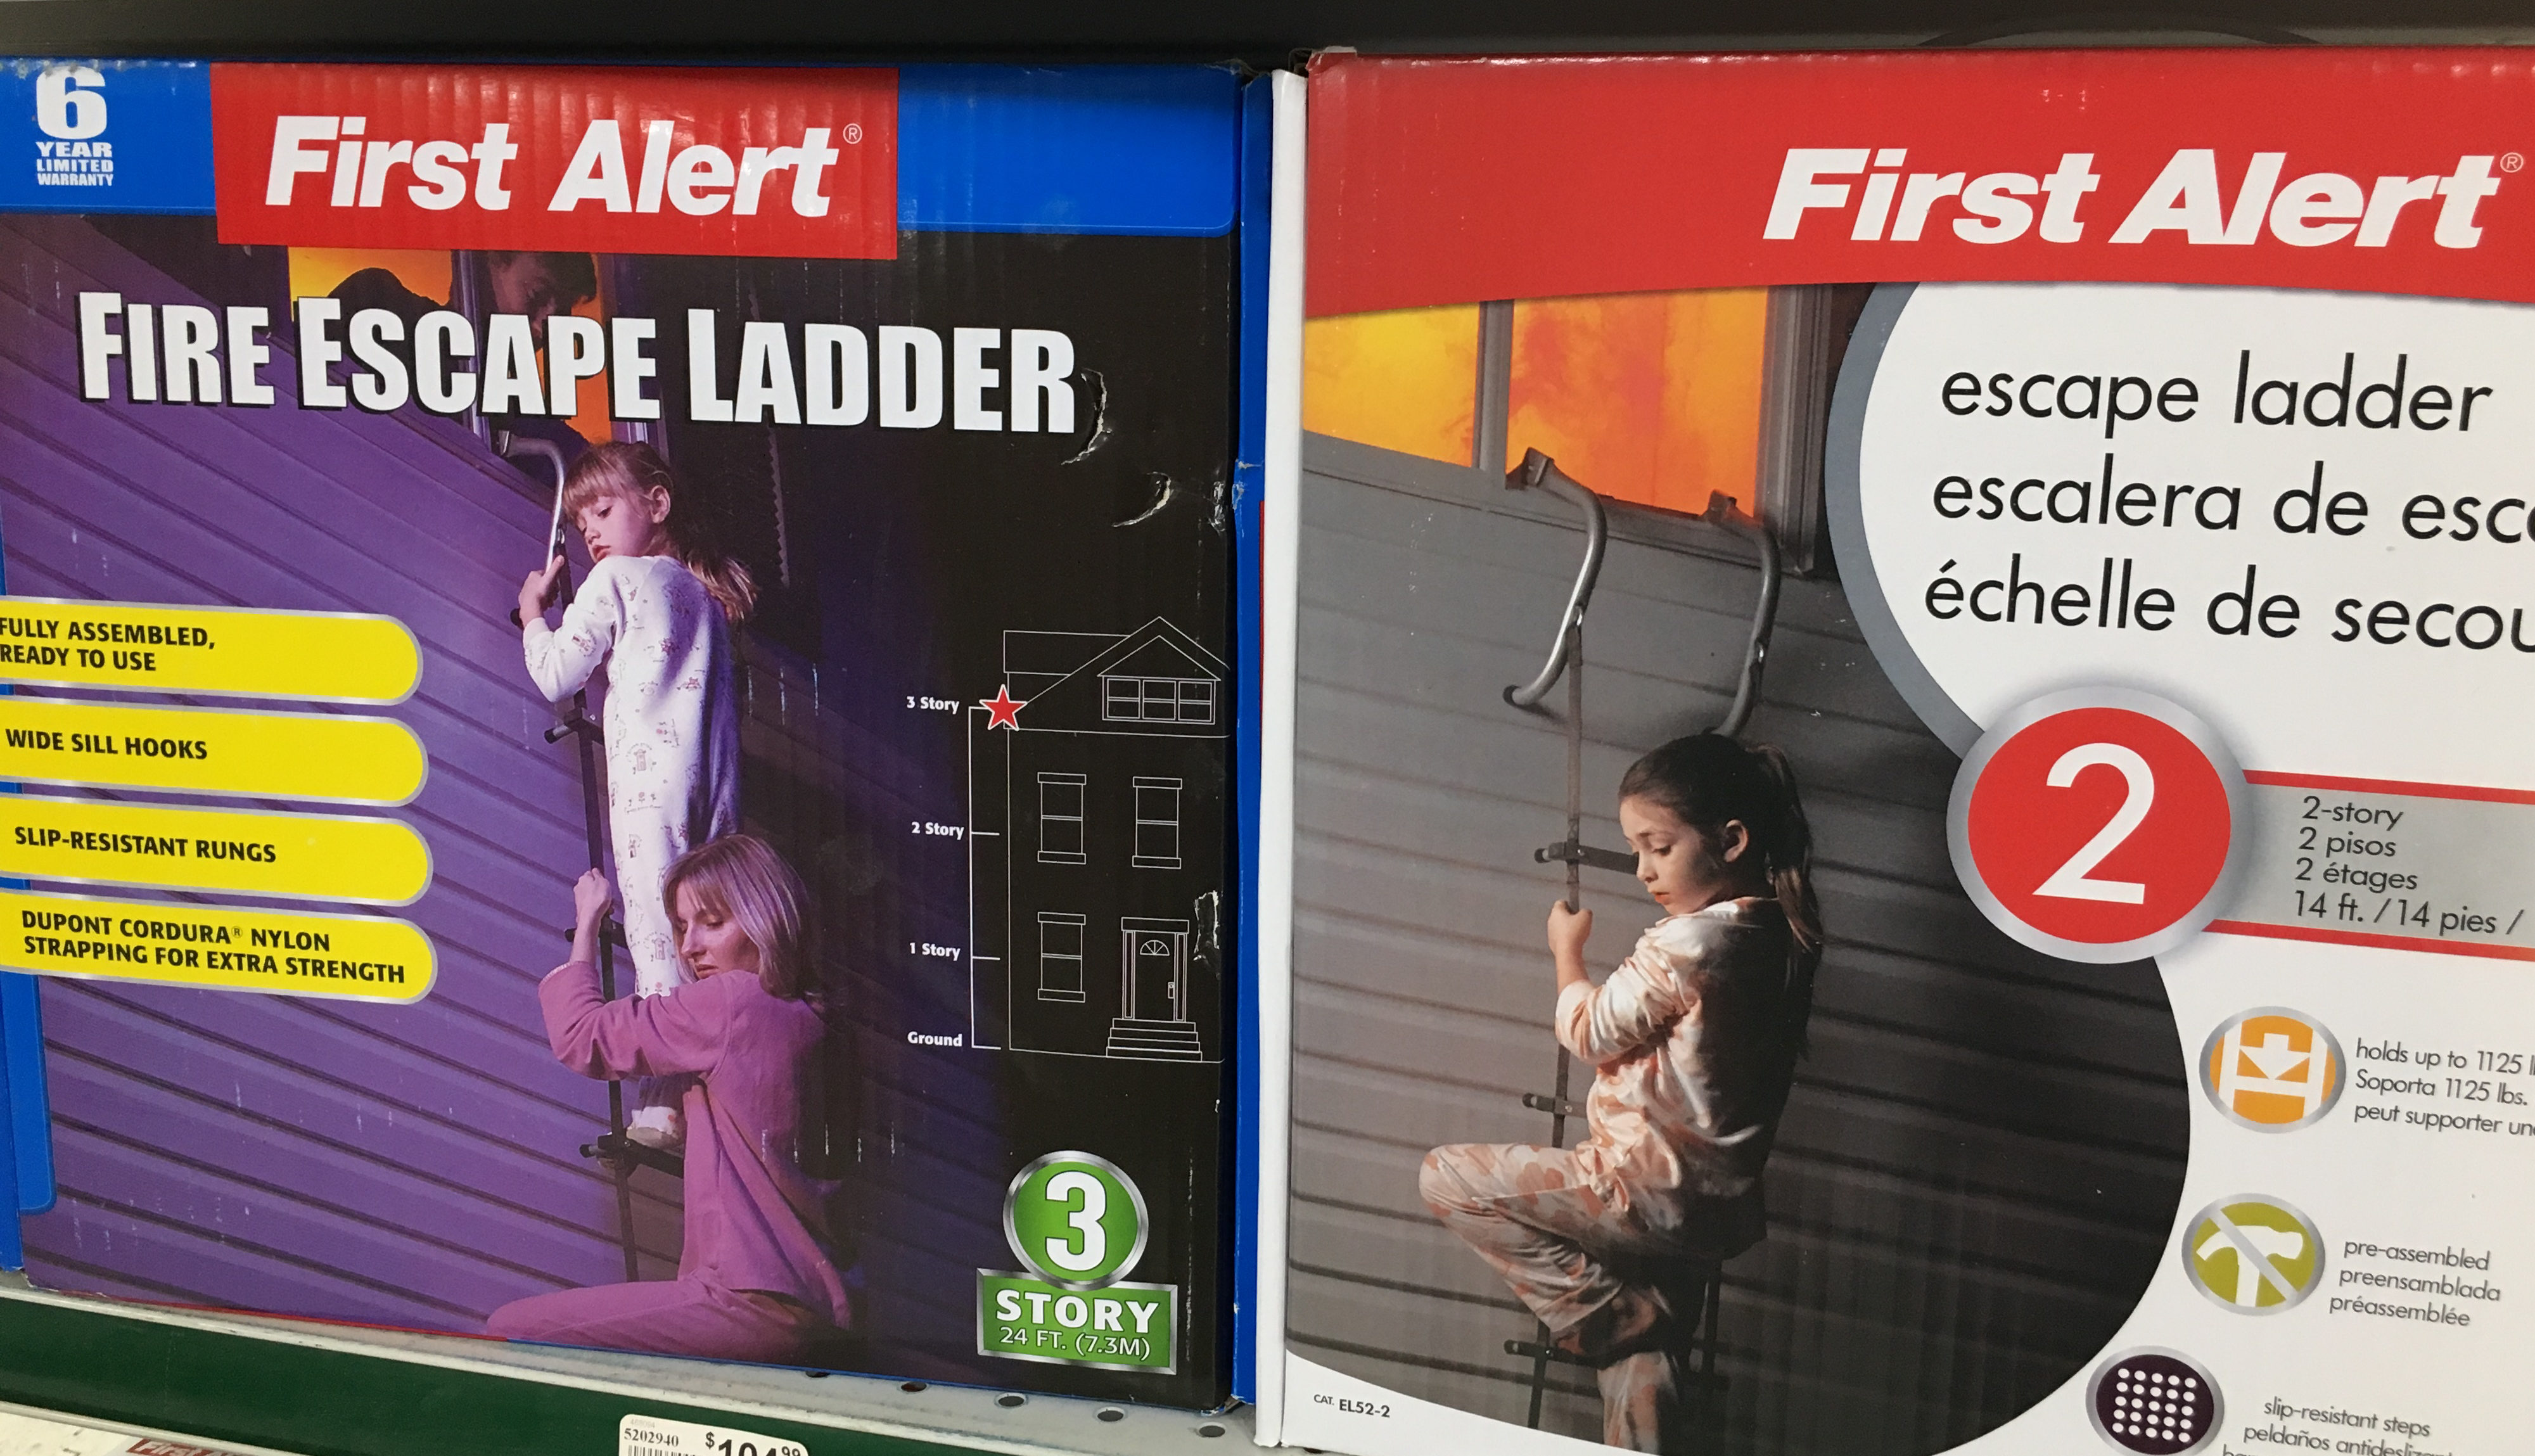 Fire escape ladders can save your family's lives if fire and smoke block the path to your lower level.